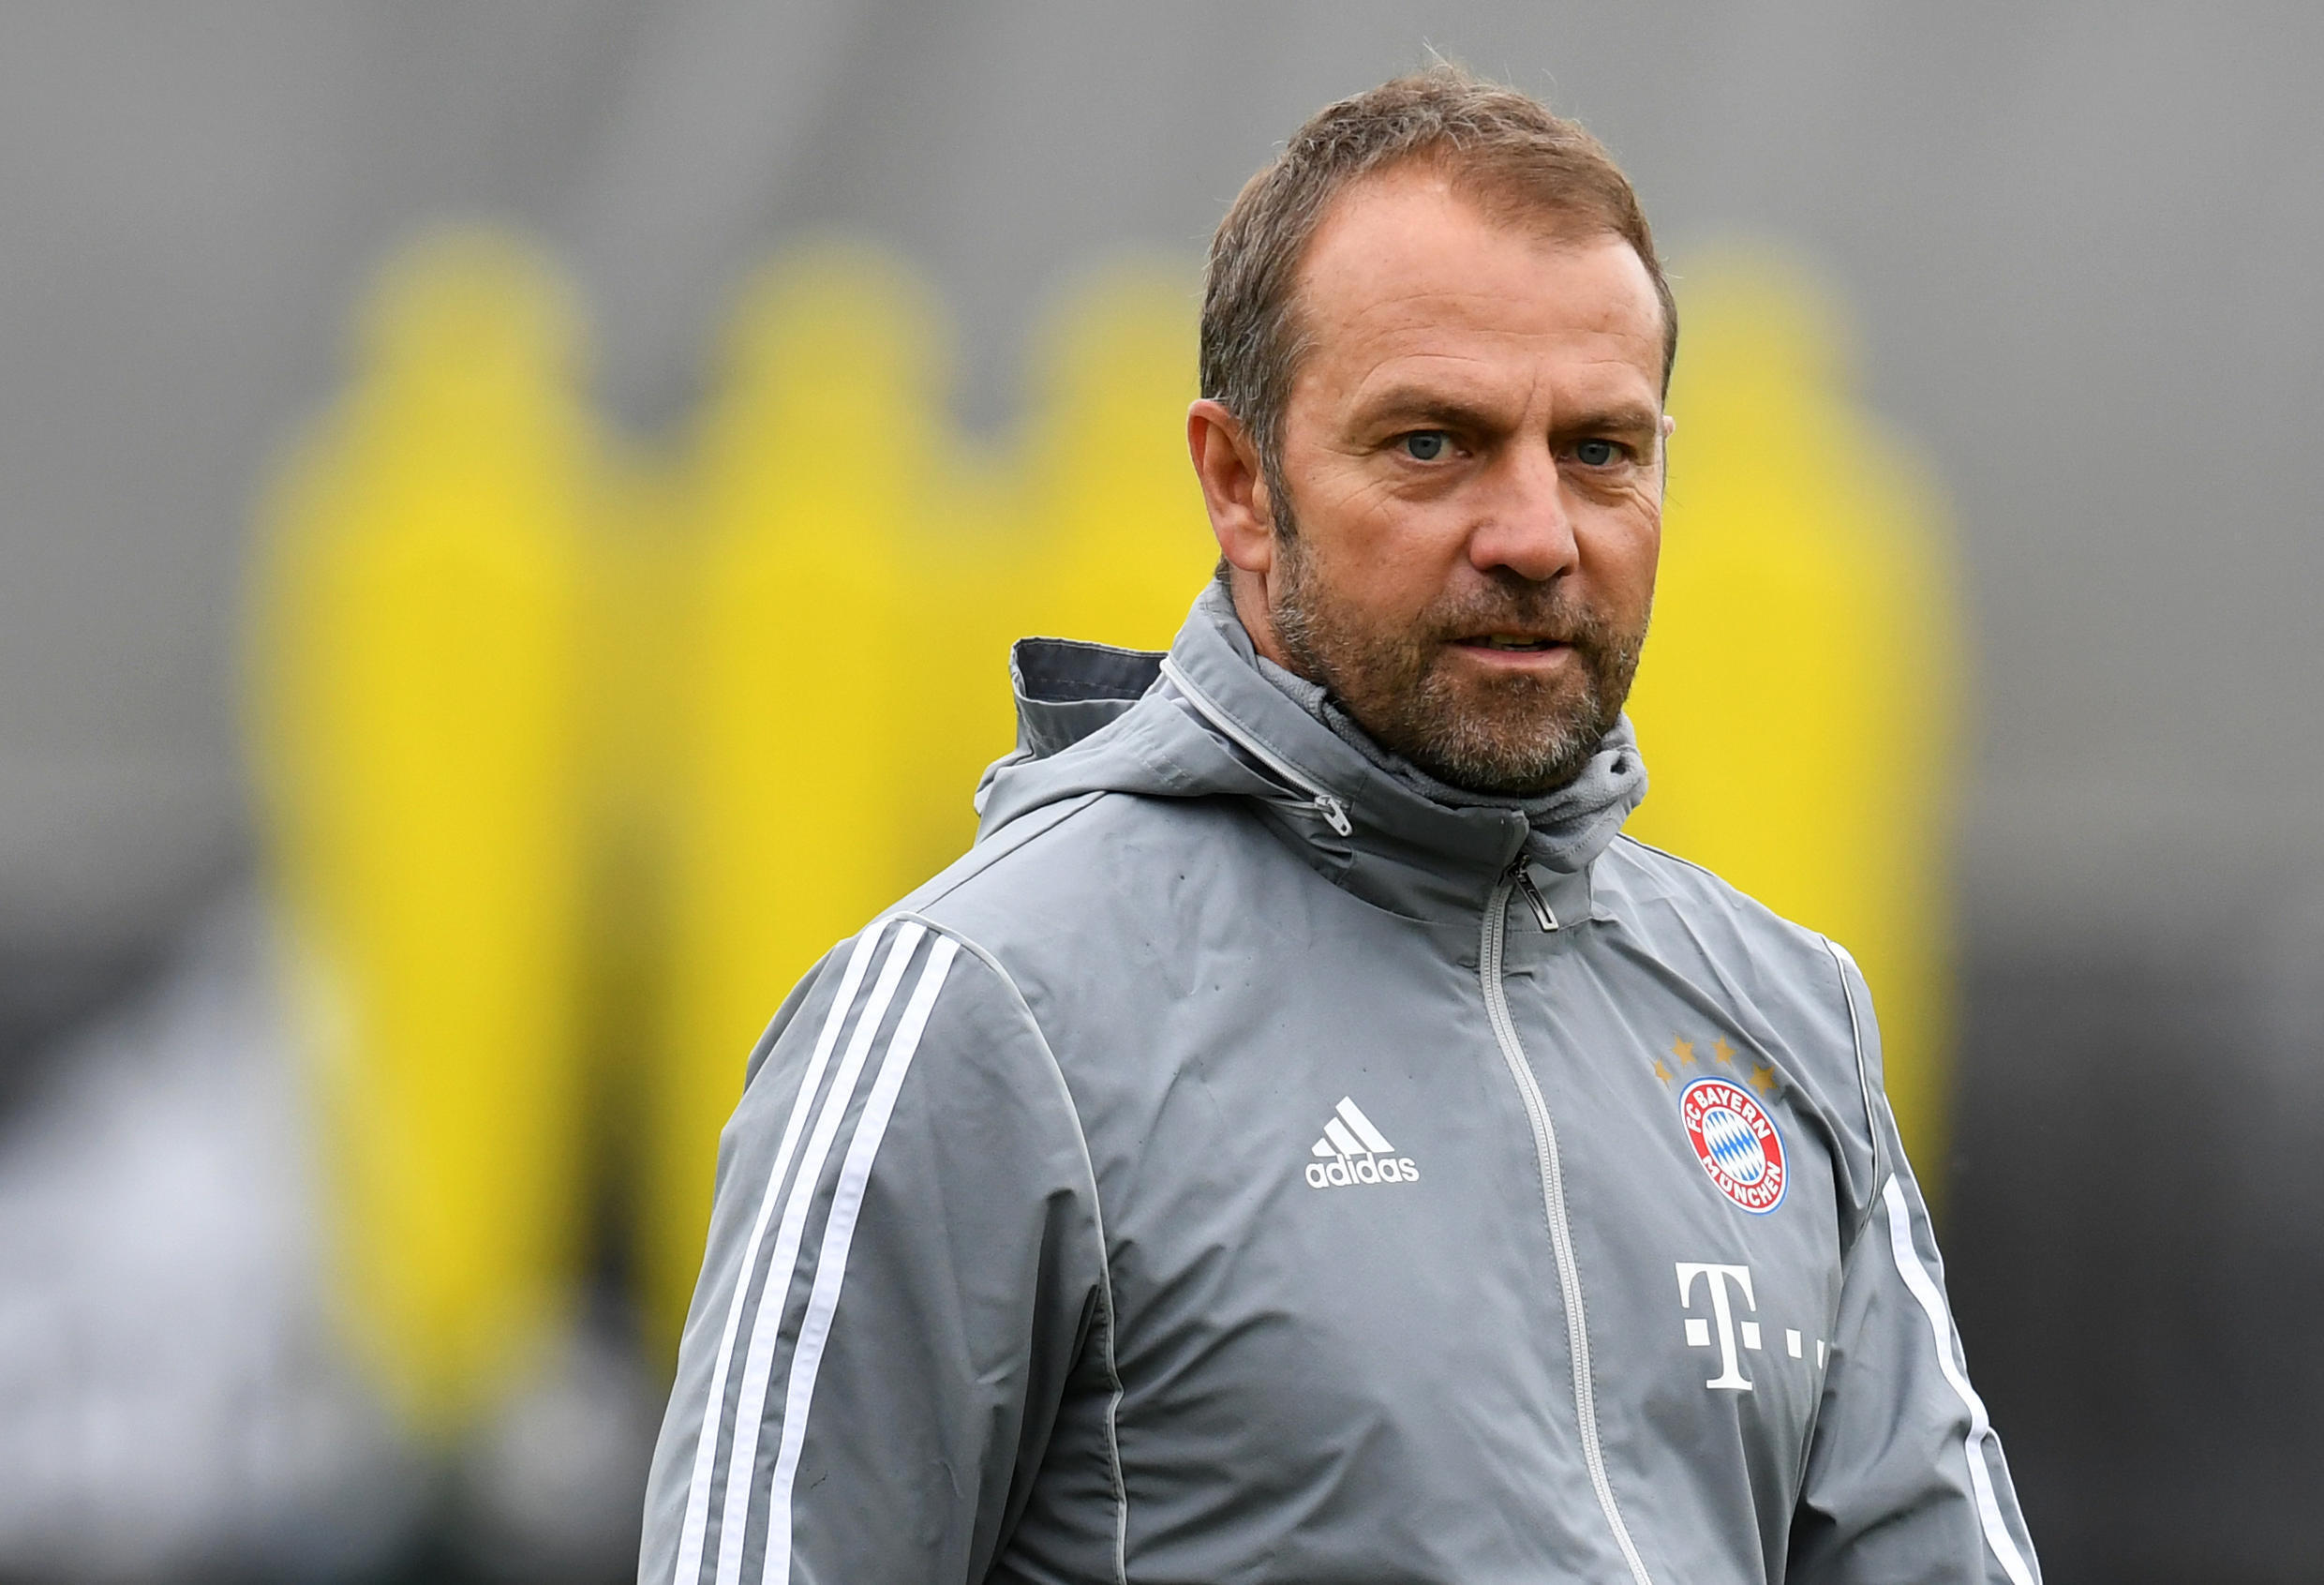 Bayern Munich coach Hansi Flick has steered the side to the cusp of the Bundesliga title.